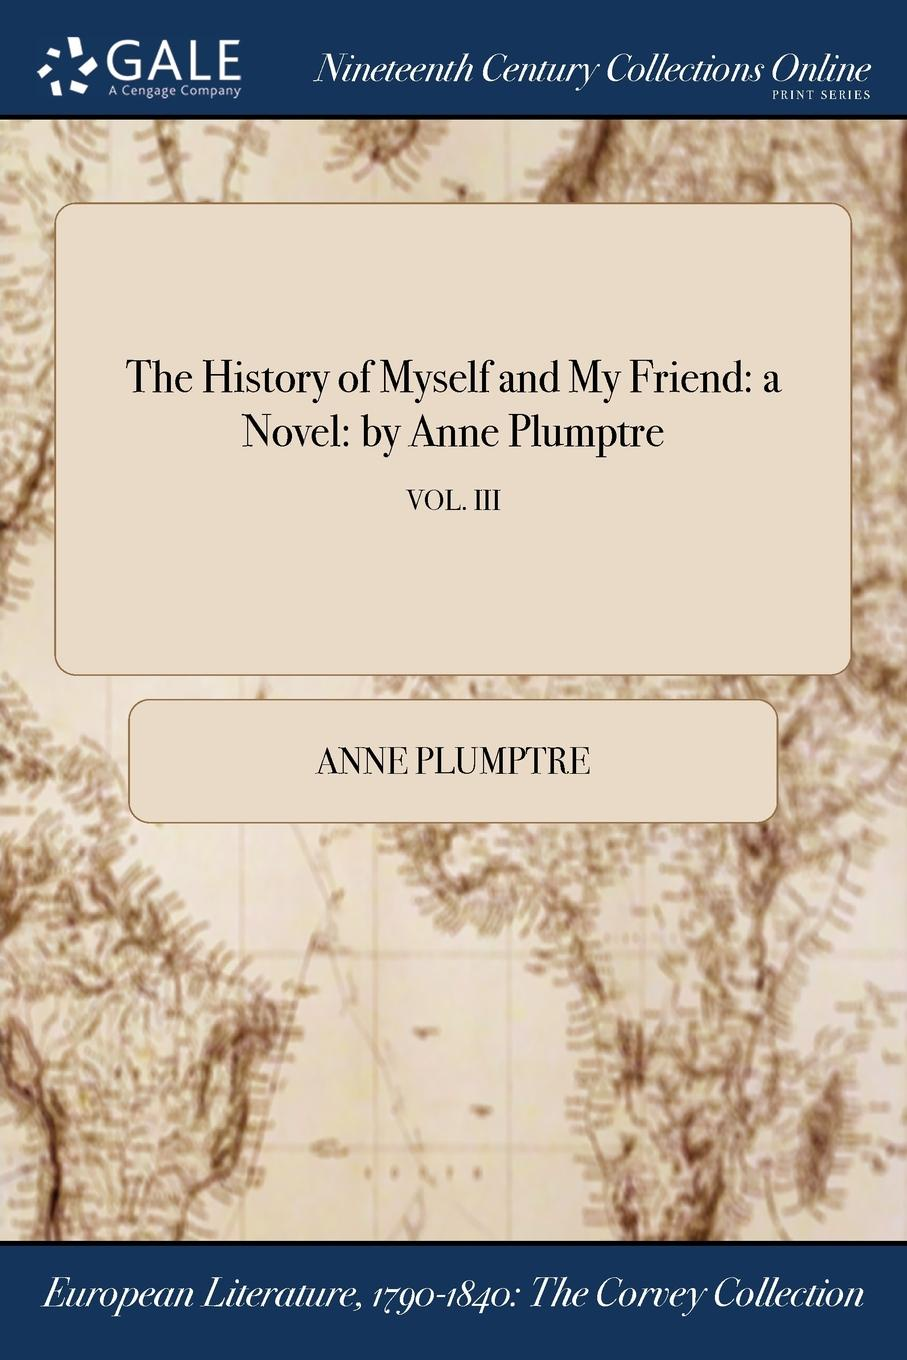 The History of Myself and My Friend. a Novel: by Anne Plumptre; VOL. III